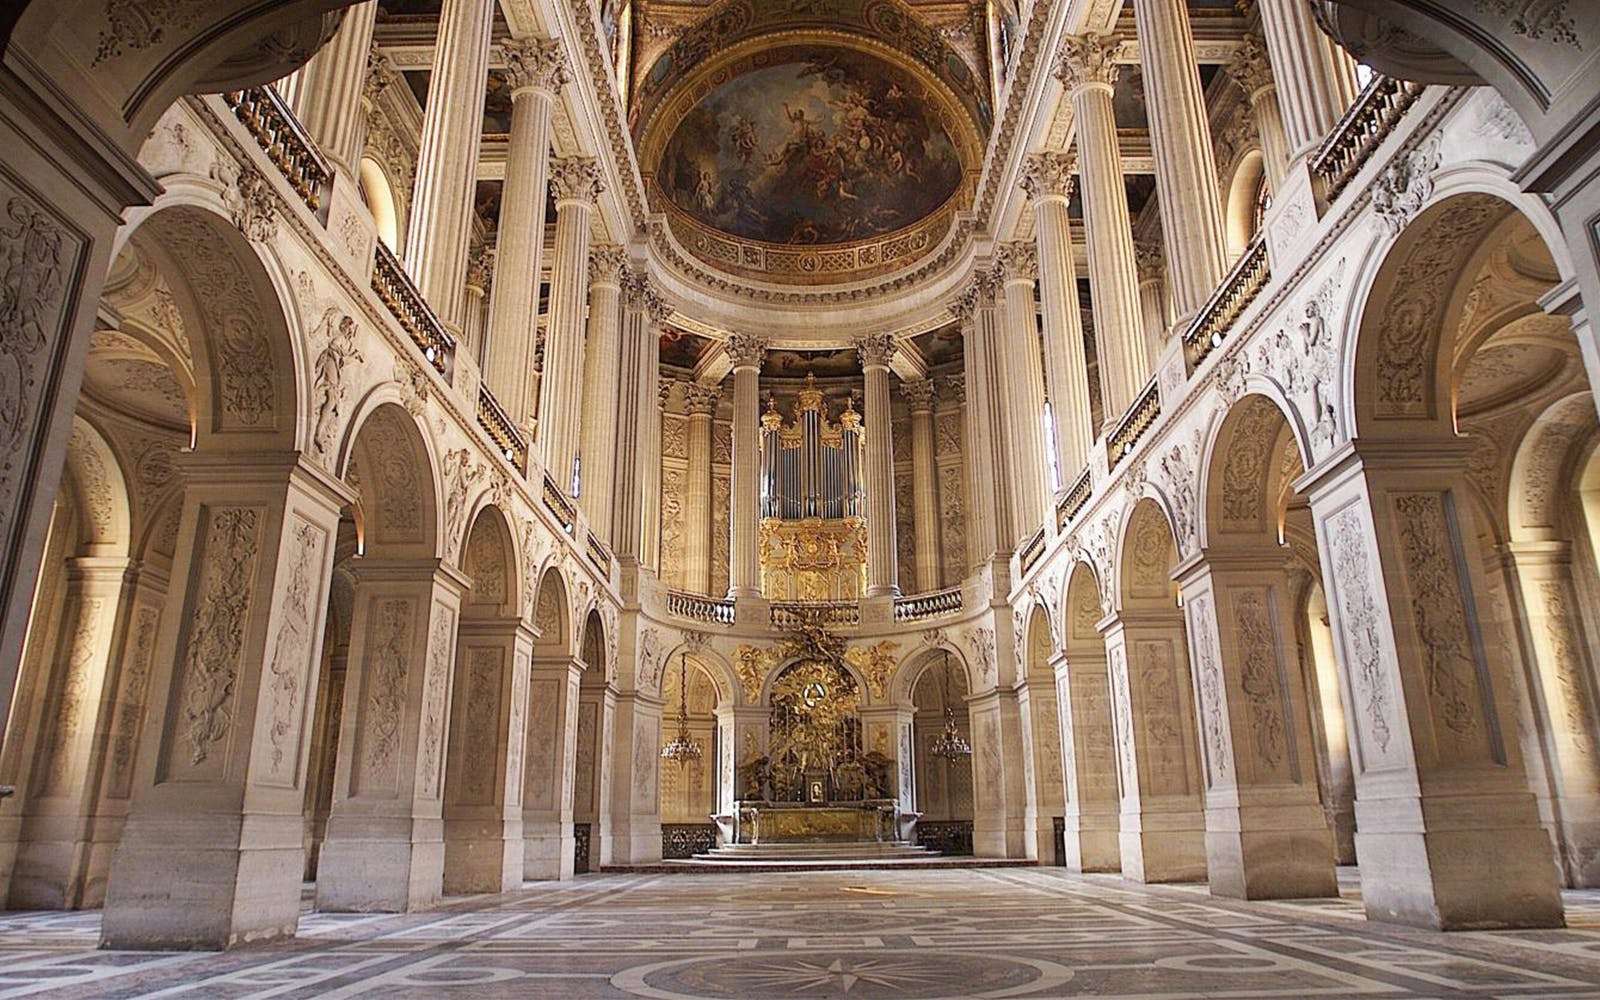 versailles palace skip the line + passport entry with audioguide-3